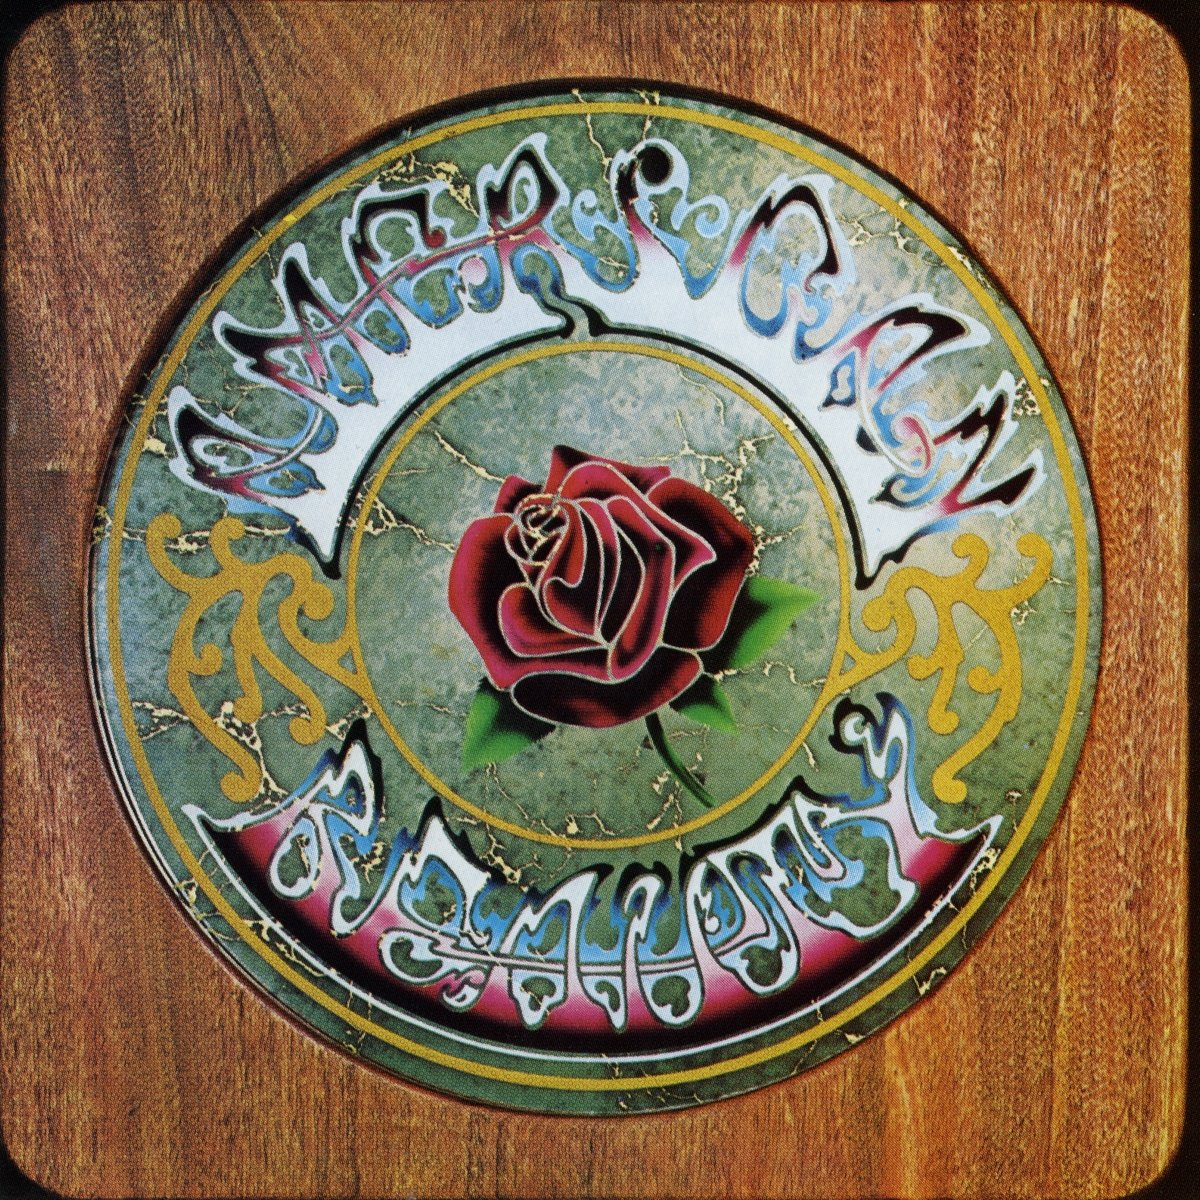 American Beauty: The Grateful Dead: Amazon.fr: Musique